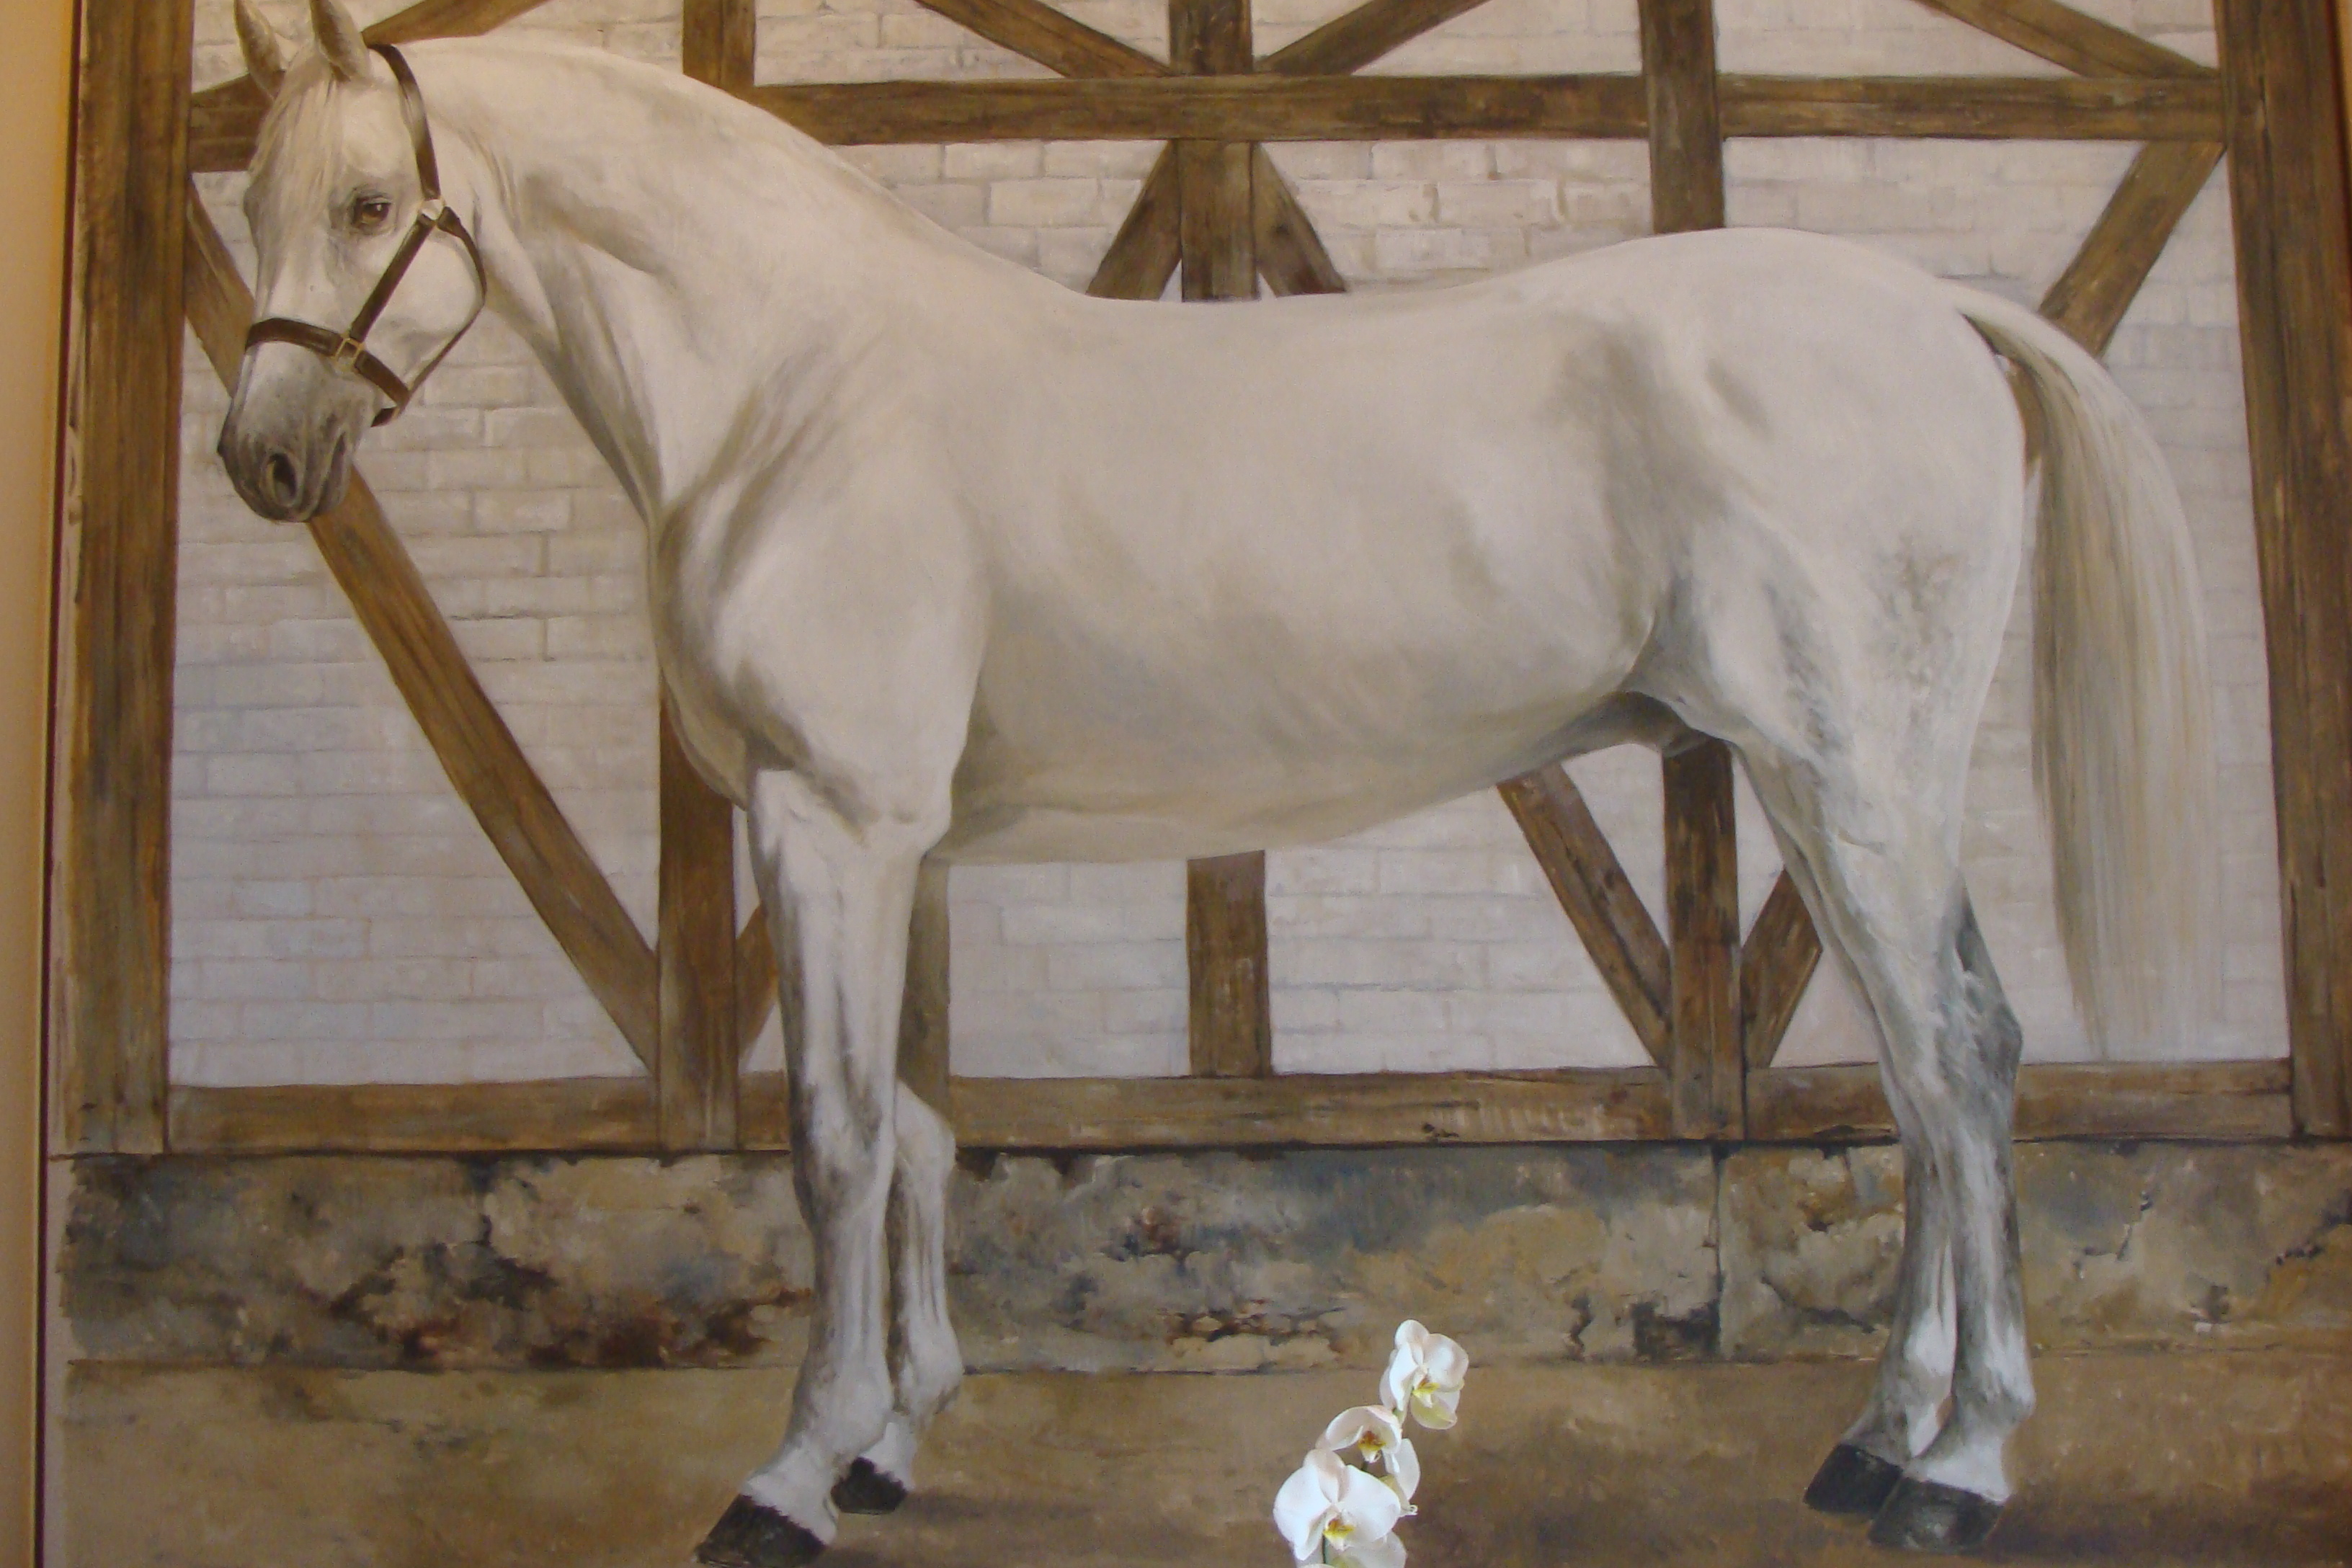 symbol of the Chateau Cheval Blanc - the white horse